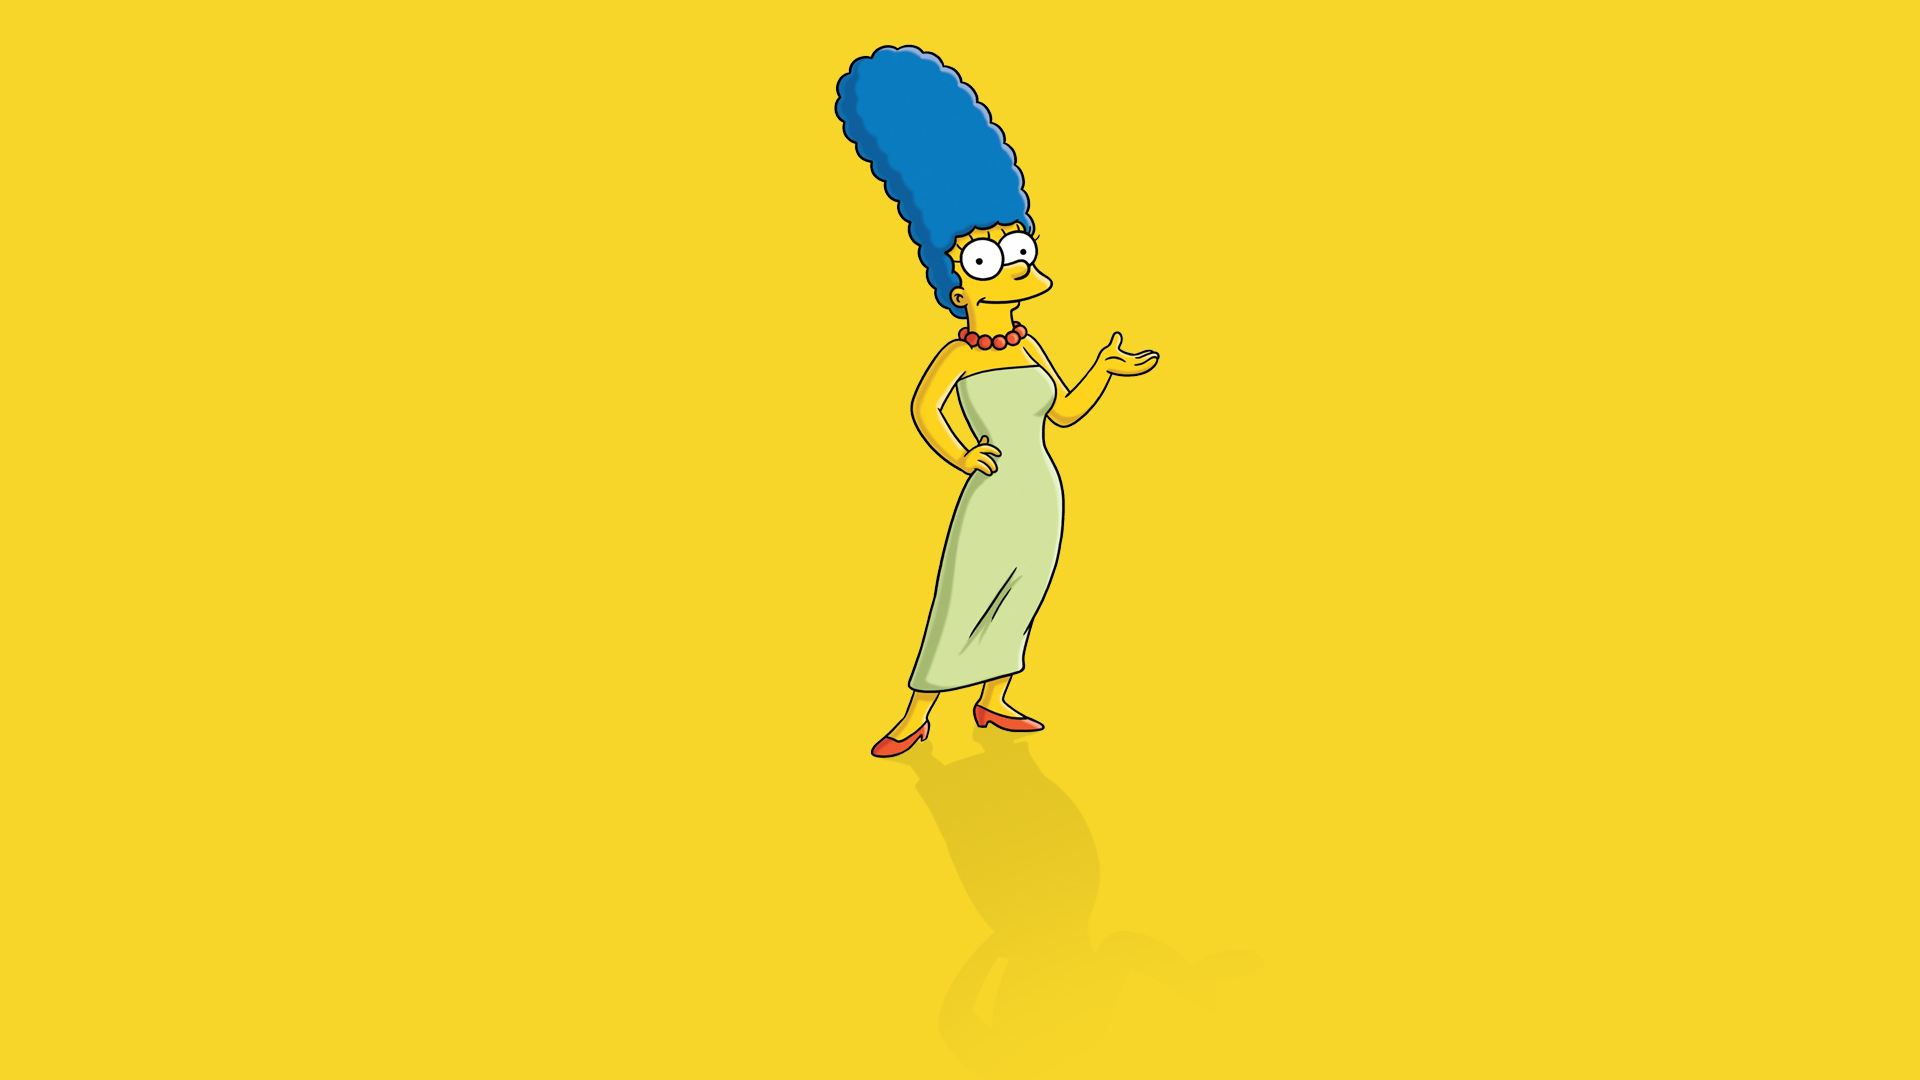 Marge Simpson   Wallpaper High Definition High Quality Widescreen 1920x1080